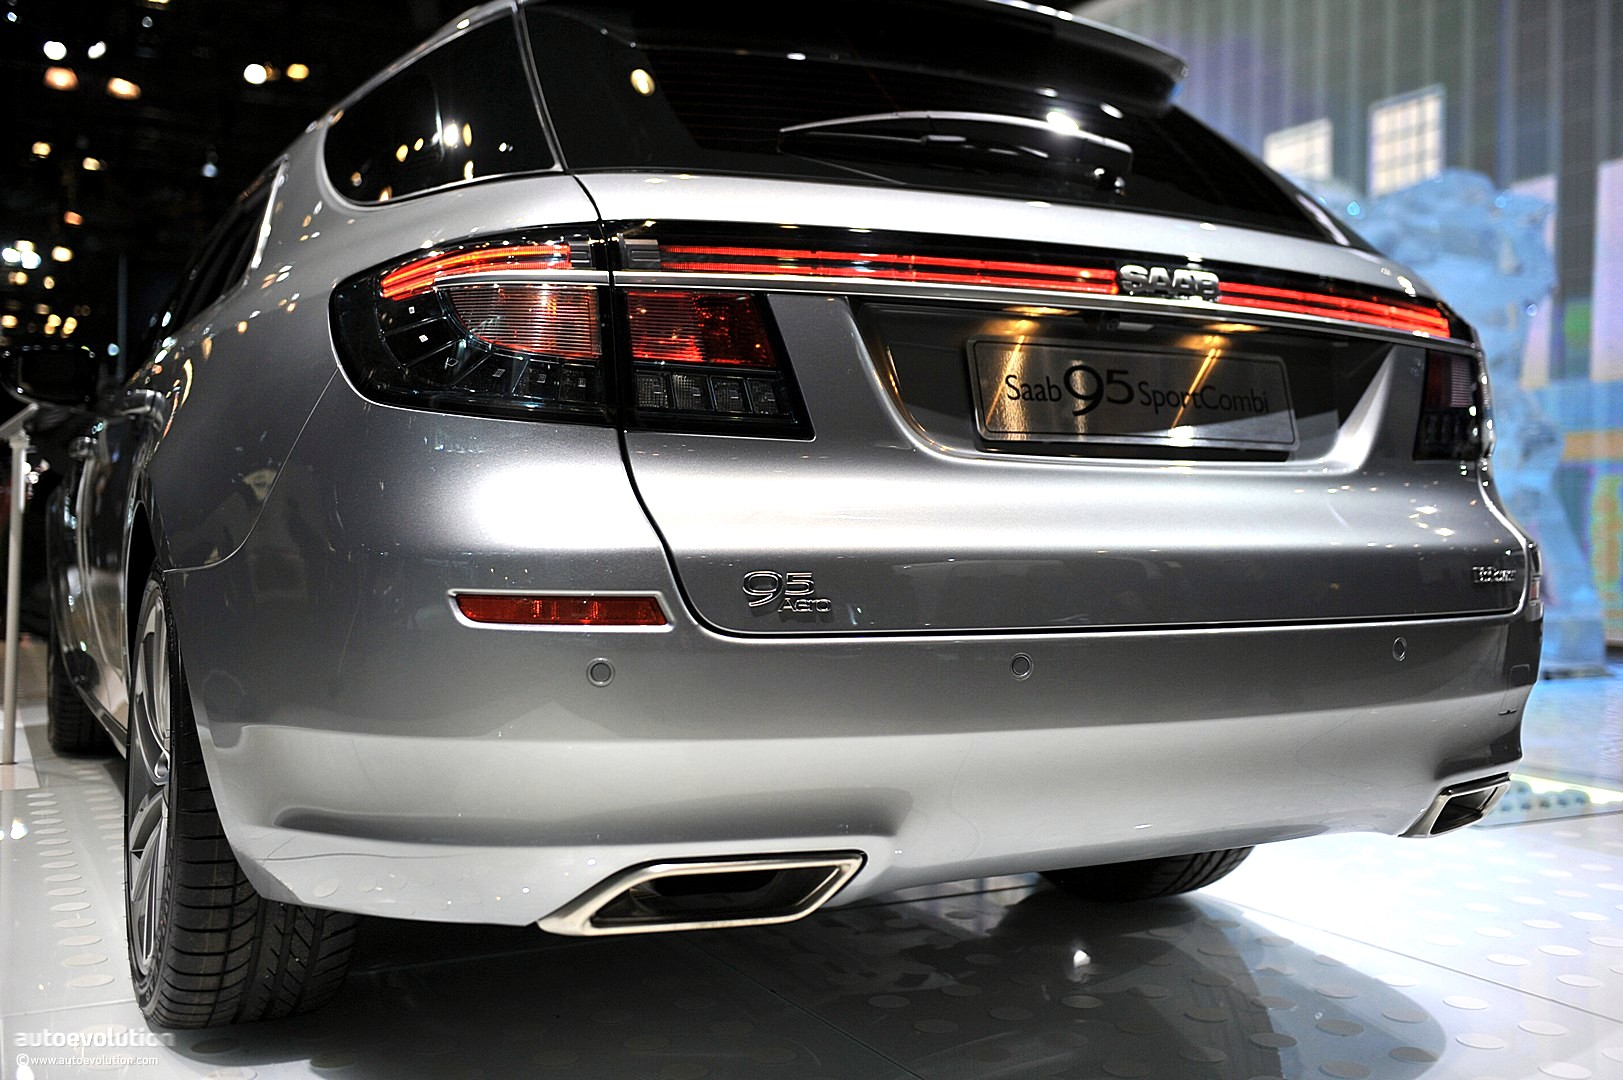 NYIAS 2011: Saab 9-5 SportCombi [Live Photos] - autoevolution